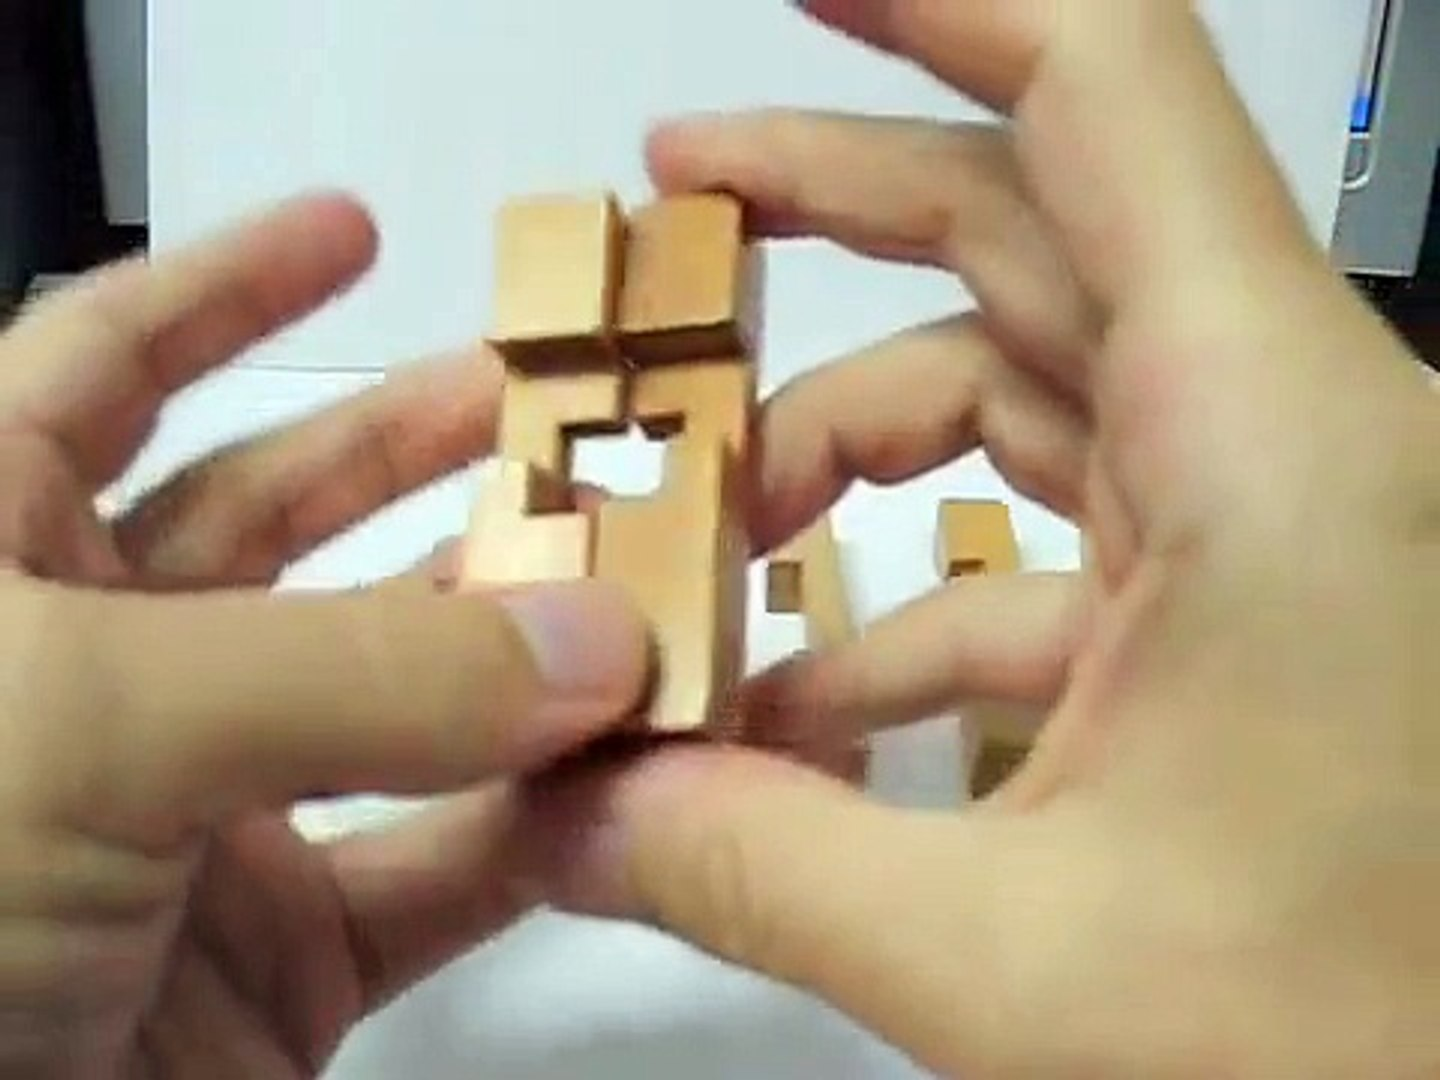 Burr Puzzle 3D Wooden Cross - Solution